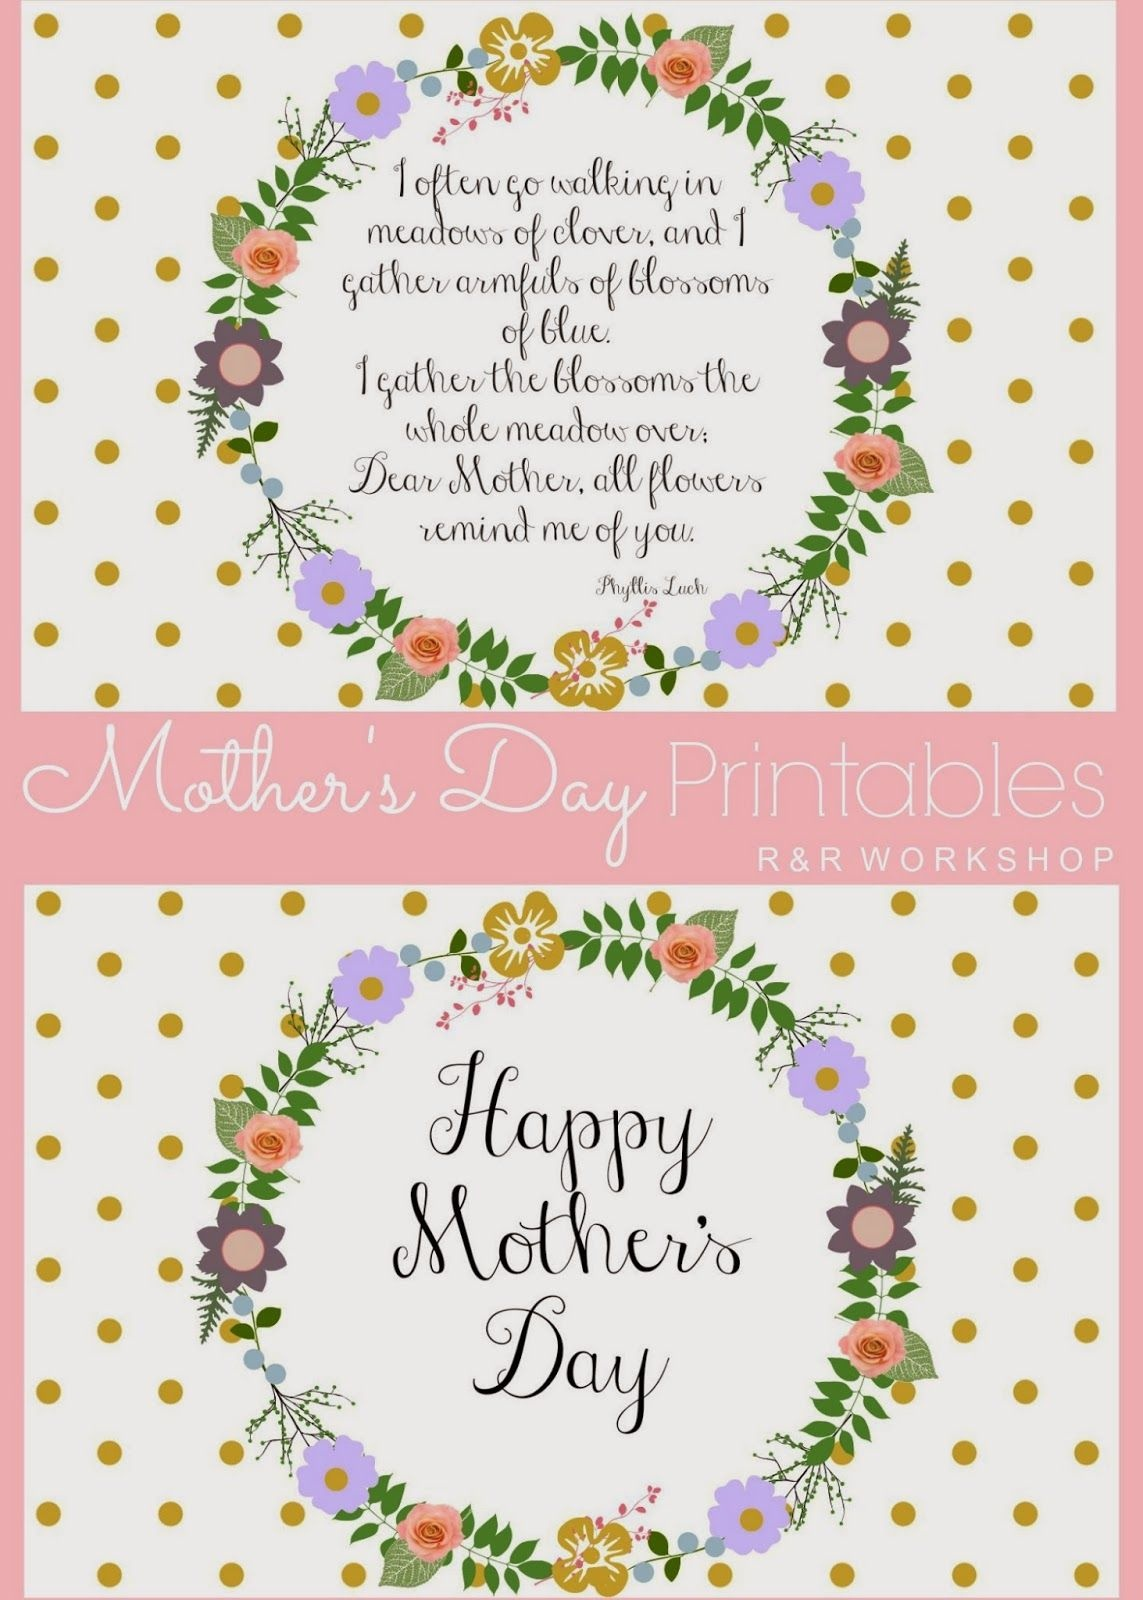 Mother's Day Poem And Free Printables | Live It. Love It. Lds - Free Printable Mothers Day Poems